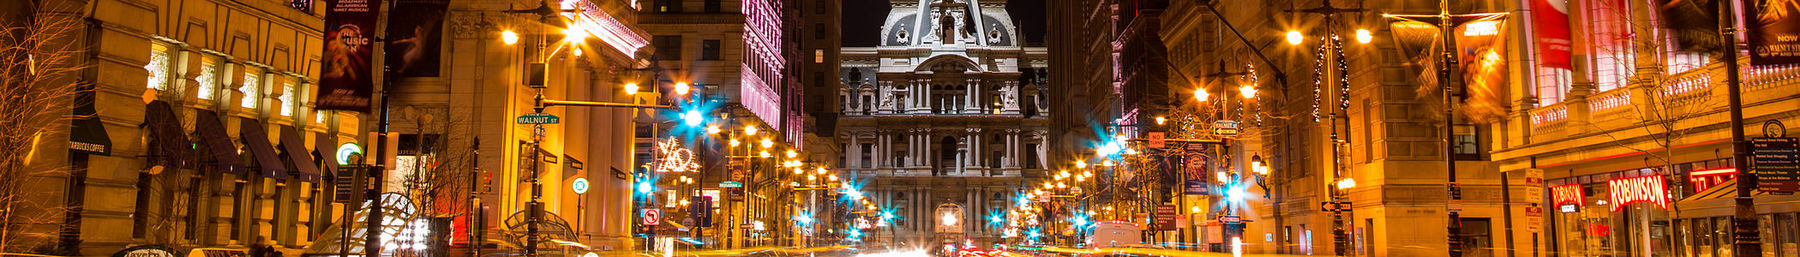 Philadelphia Broad Street night banner.jpg